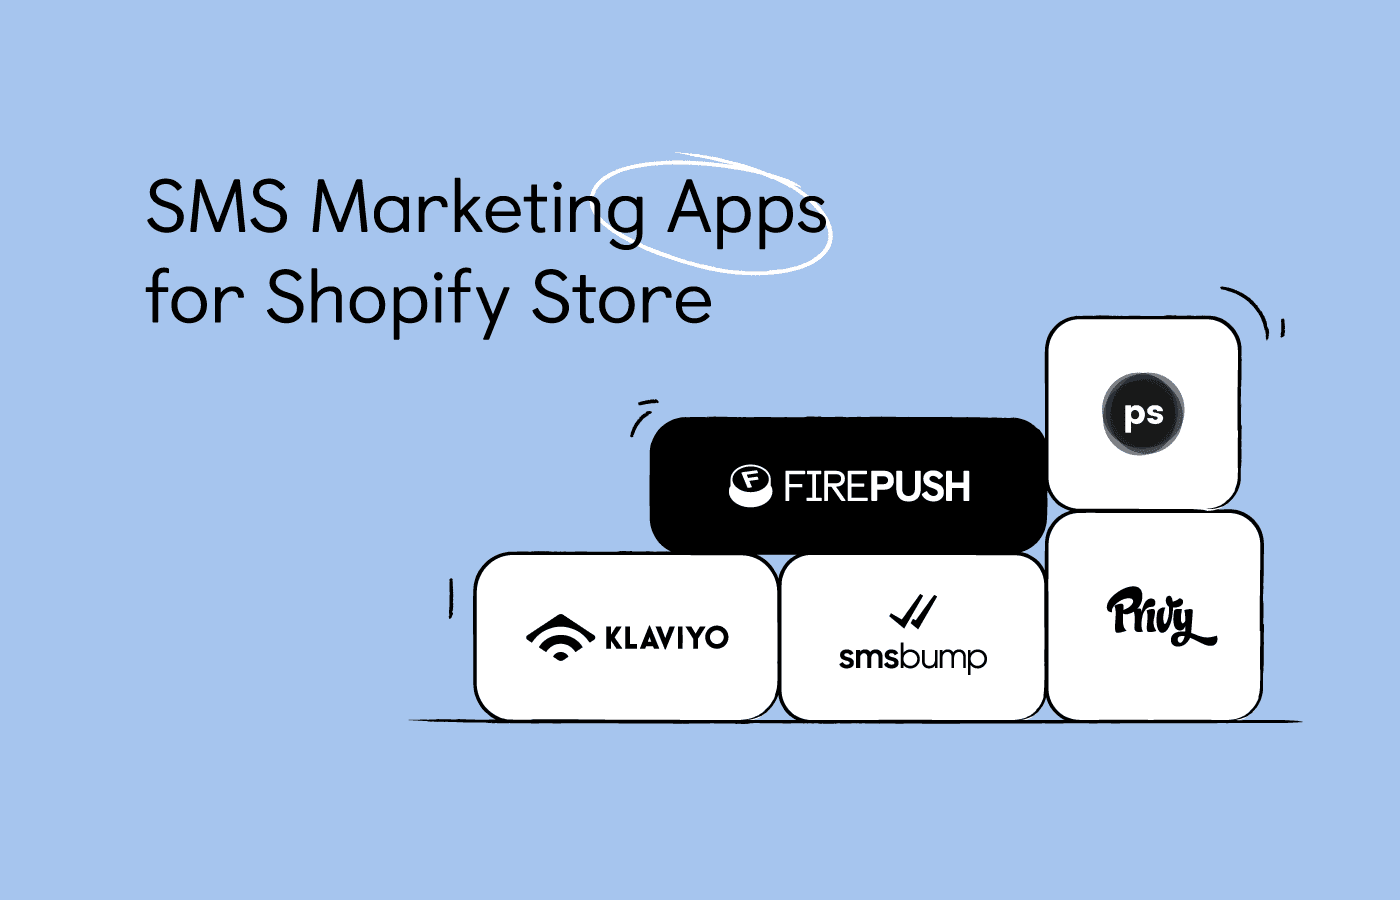 11 Best SMS Marketing Apps for Shopify